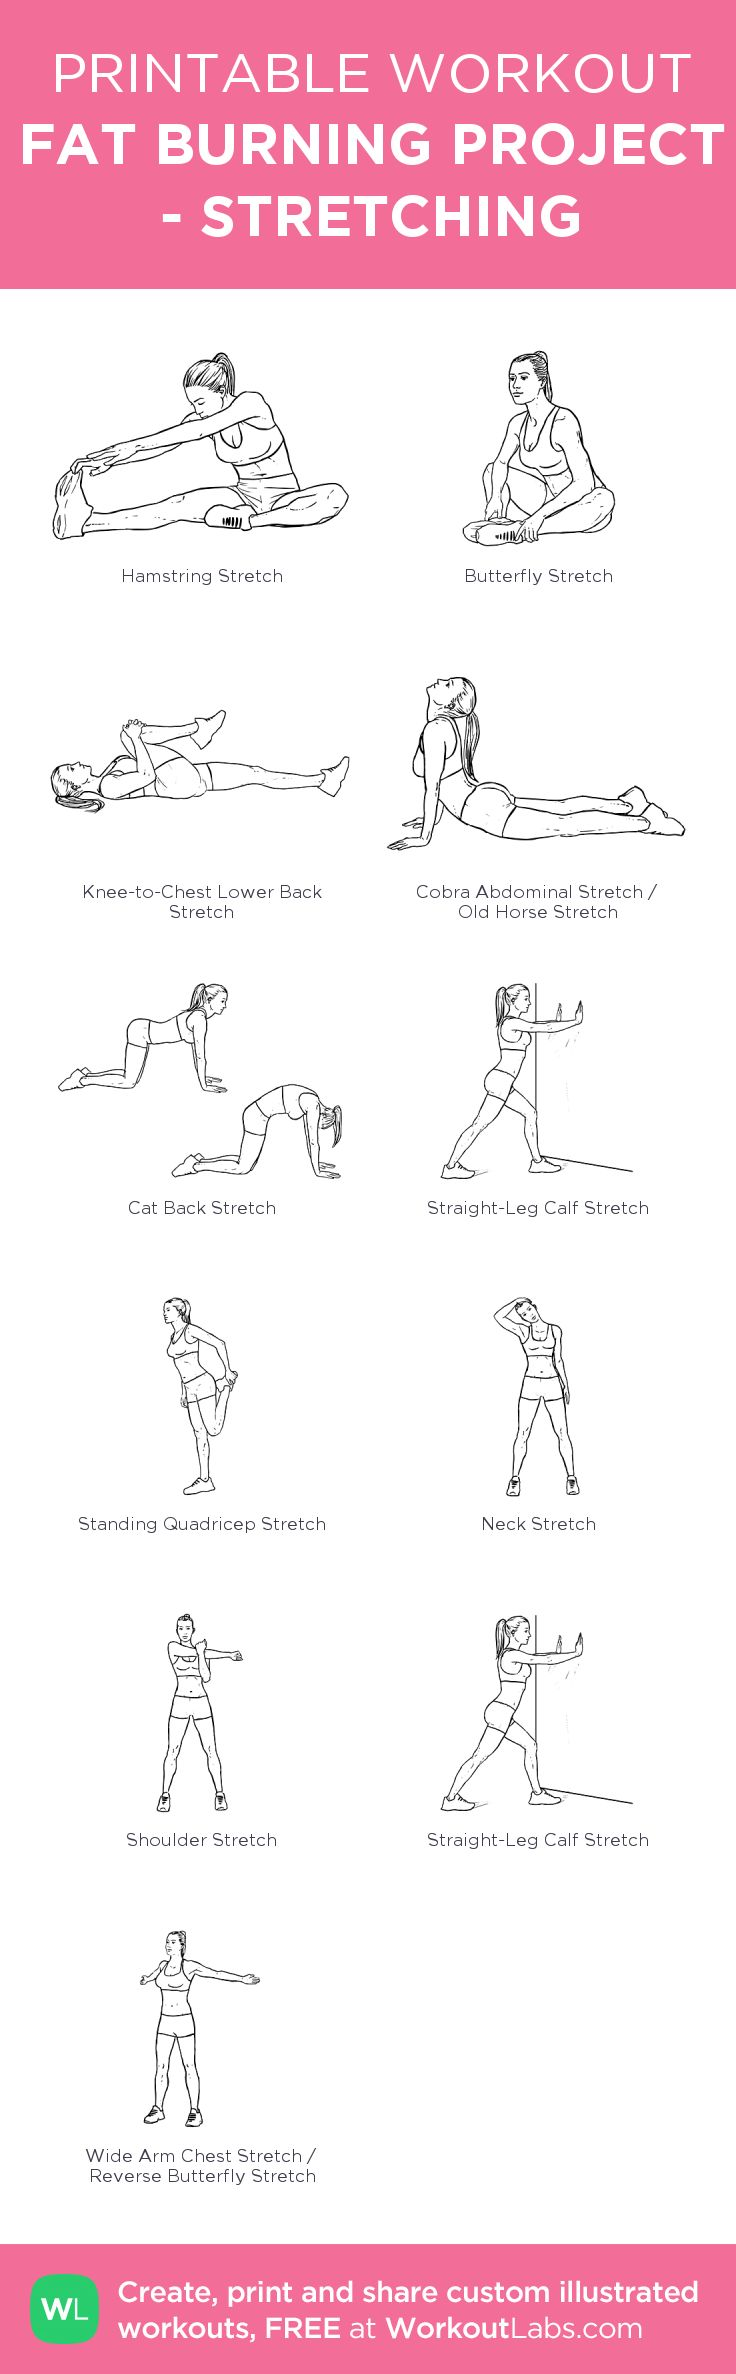 FAT BURNING PROJECT - STRETCHING: HYERICORE PROJECT. Stretching is very important. Before you do daily workout, stretch your muscles 10 minutes.